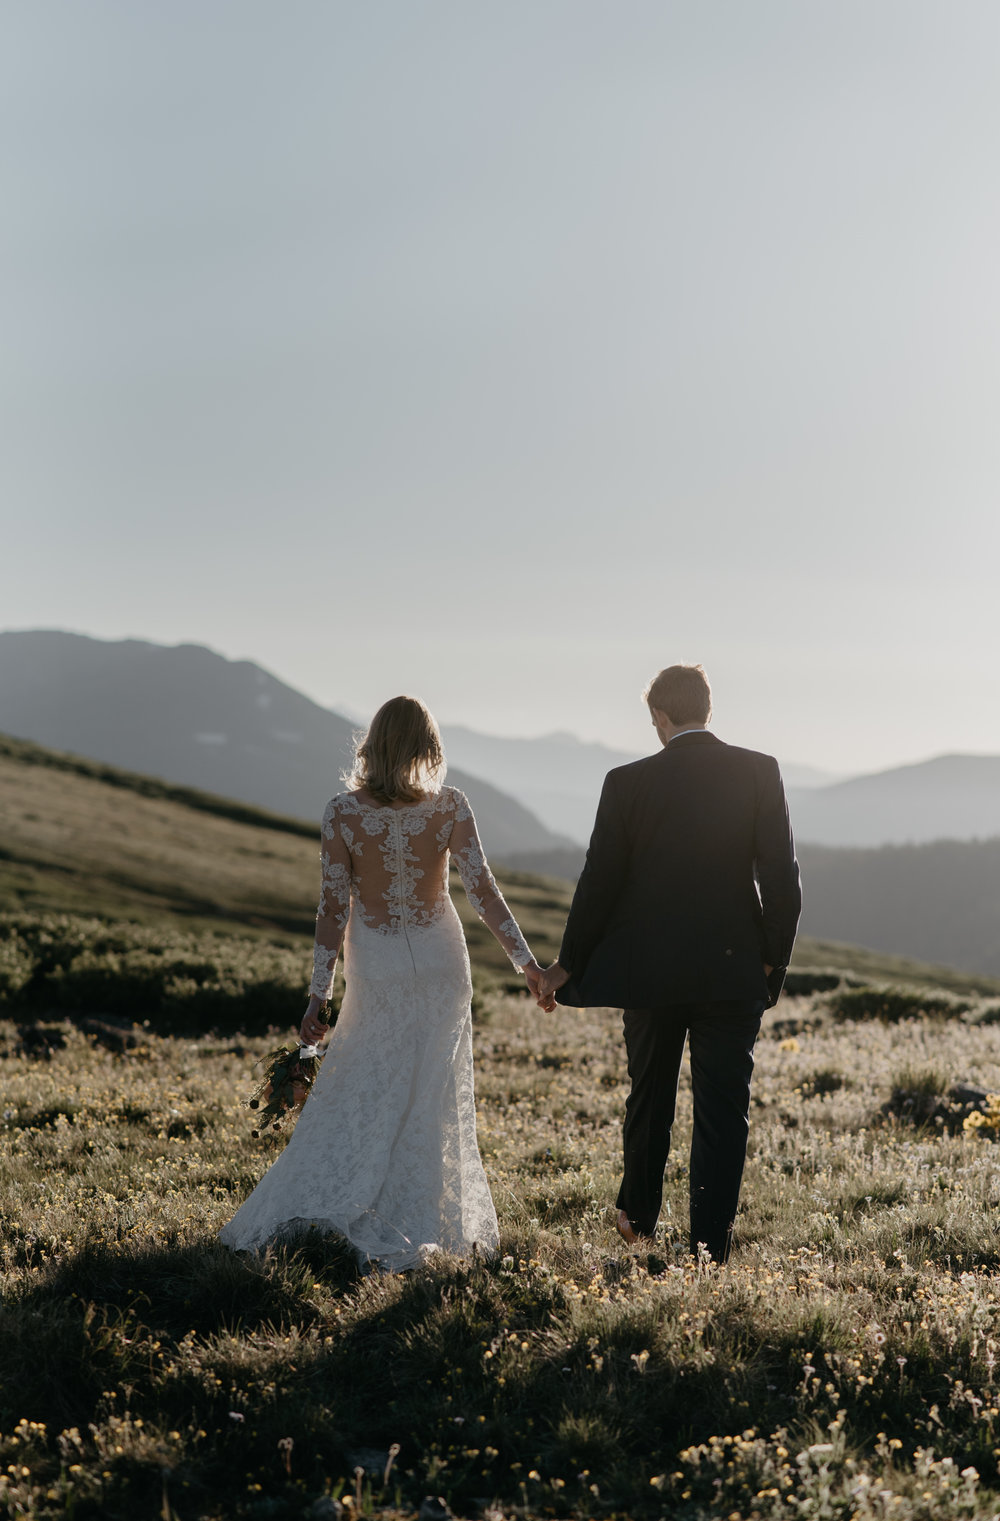 Independence Pass elopement in Aspen, Colorado. Aspen wedding and elopement photographer.